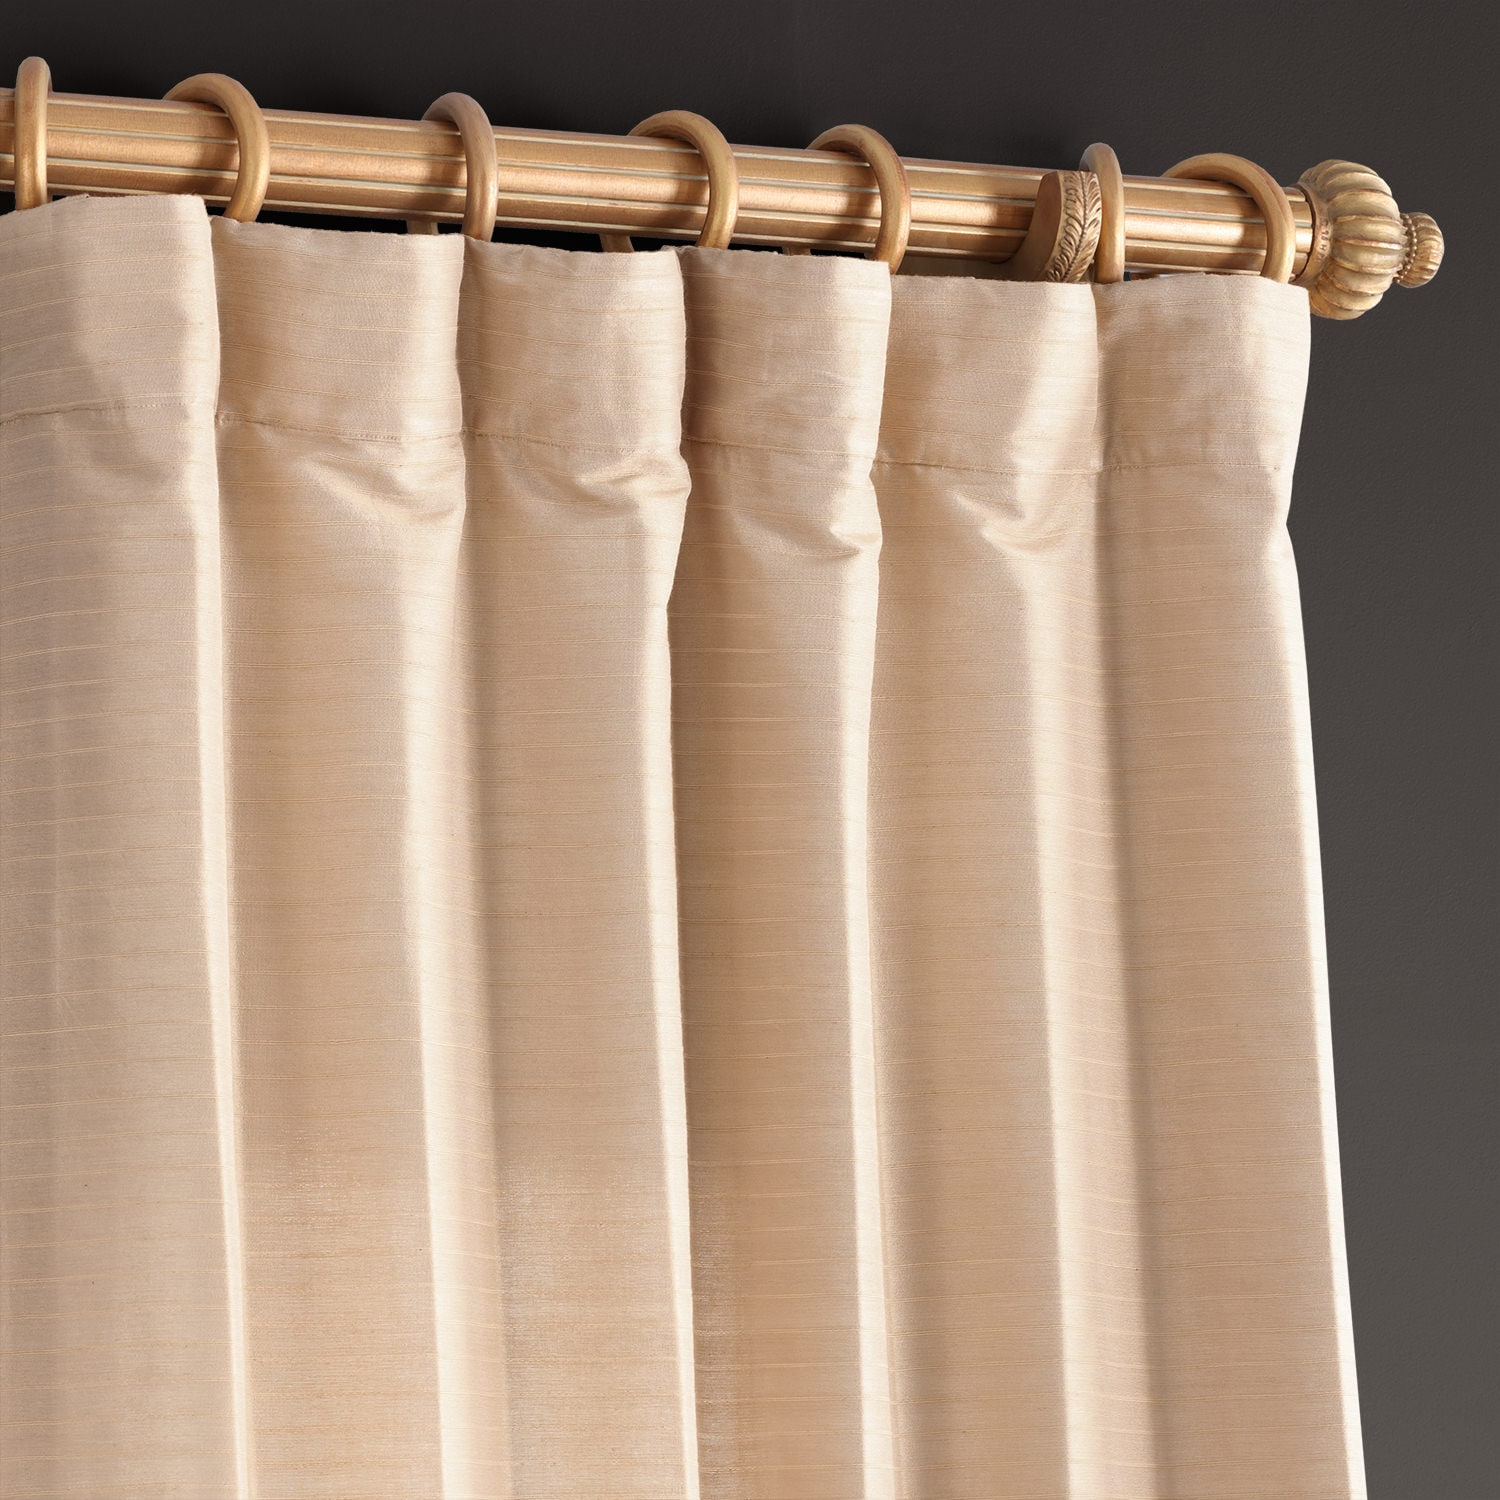 Sandcastle Tan Hand Weaved Cotton Curtain